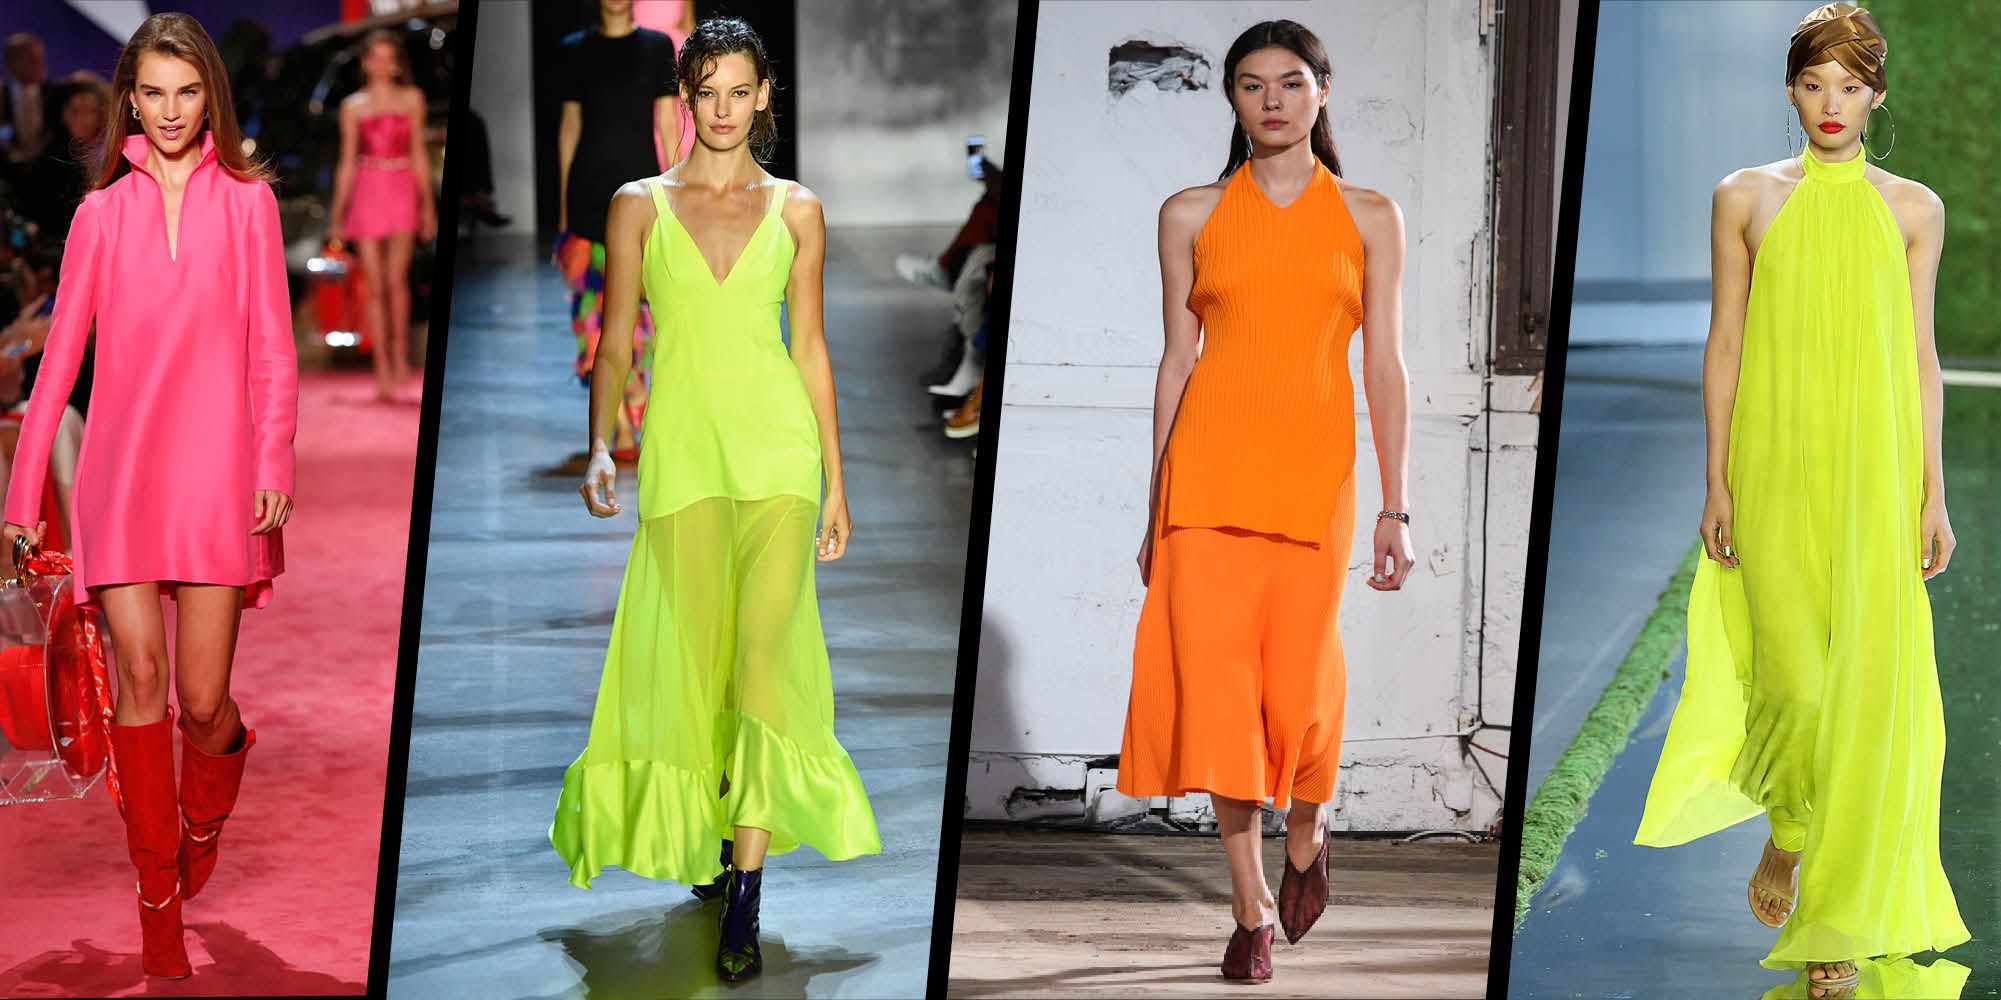 Neon brights on the catwalk